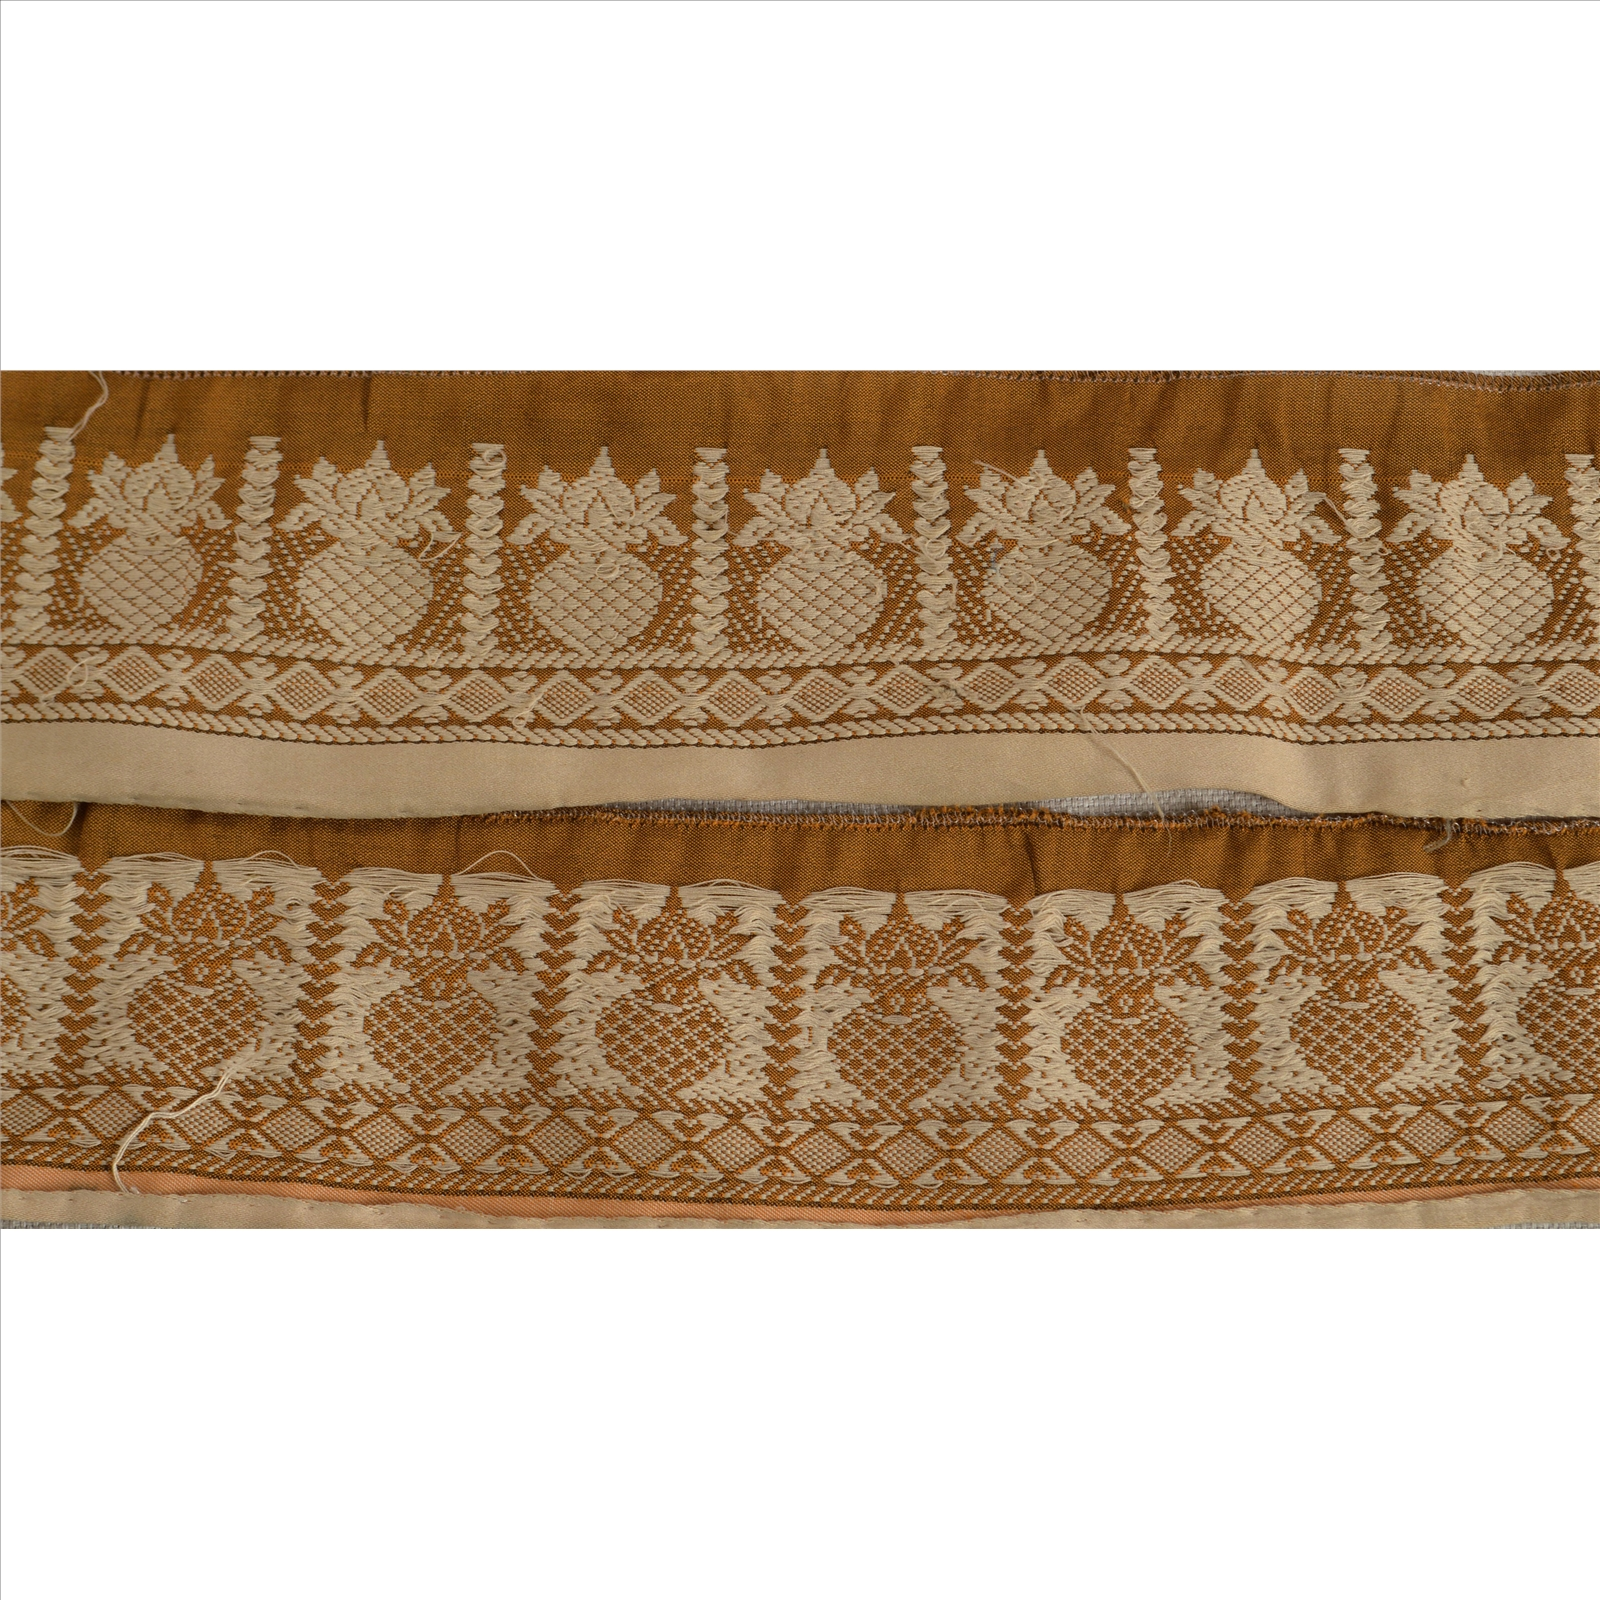 Linens & Textiles (pre-1930) Vintage Sari Border Antique Embroidered Woven Trim Sewing Saffron Lace